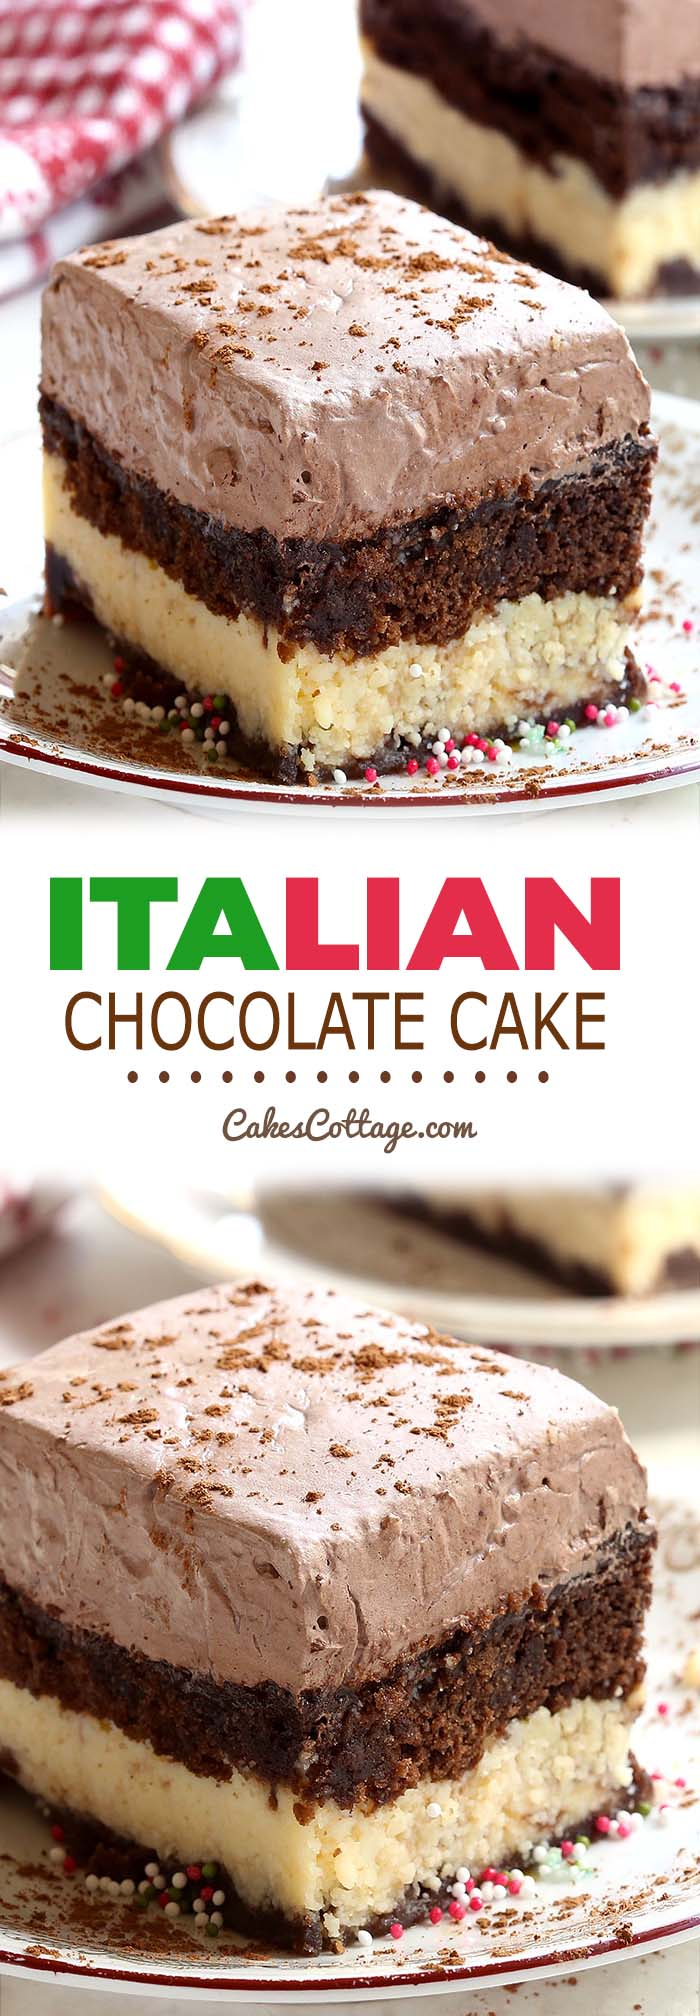 A combination of chocolate marble cake and cheesecake with a creamy chocolate topping, this Italian Chocolate Cake is an absolute must try.